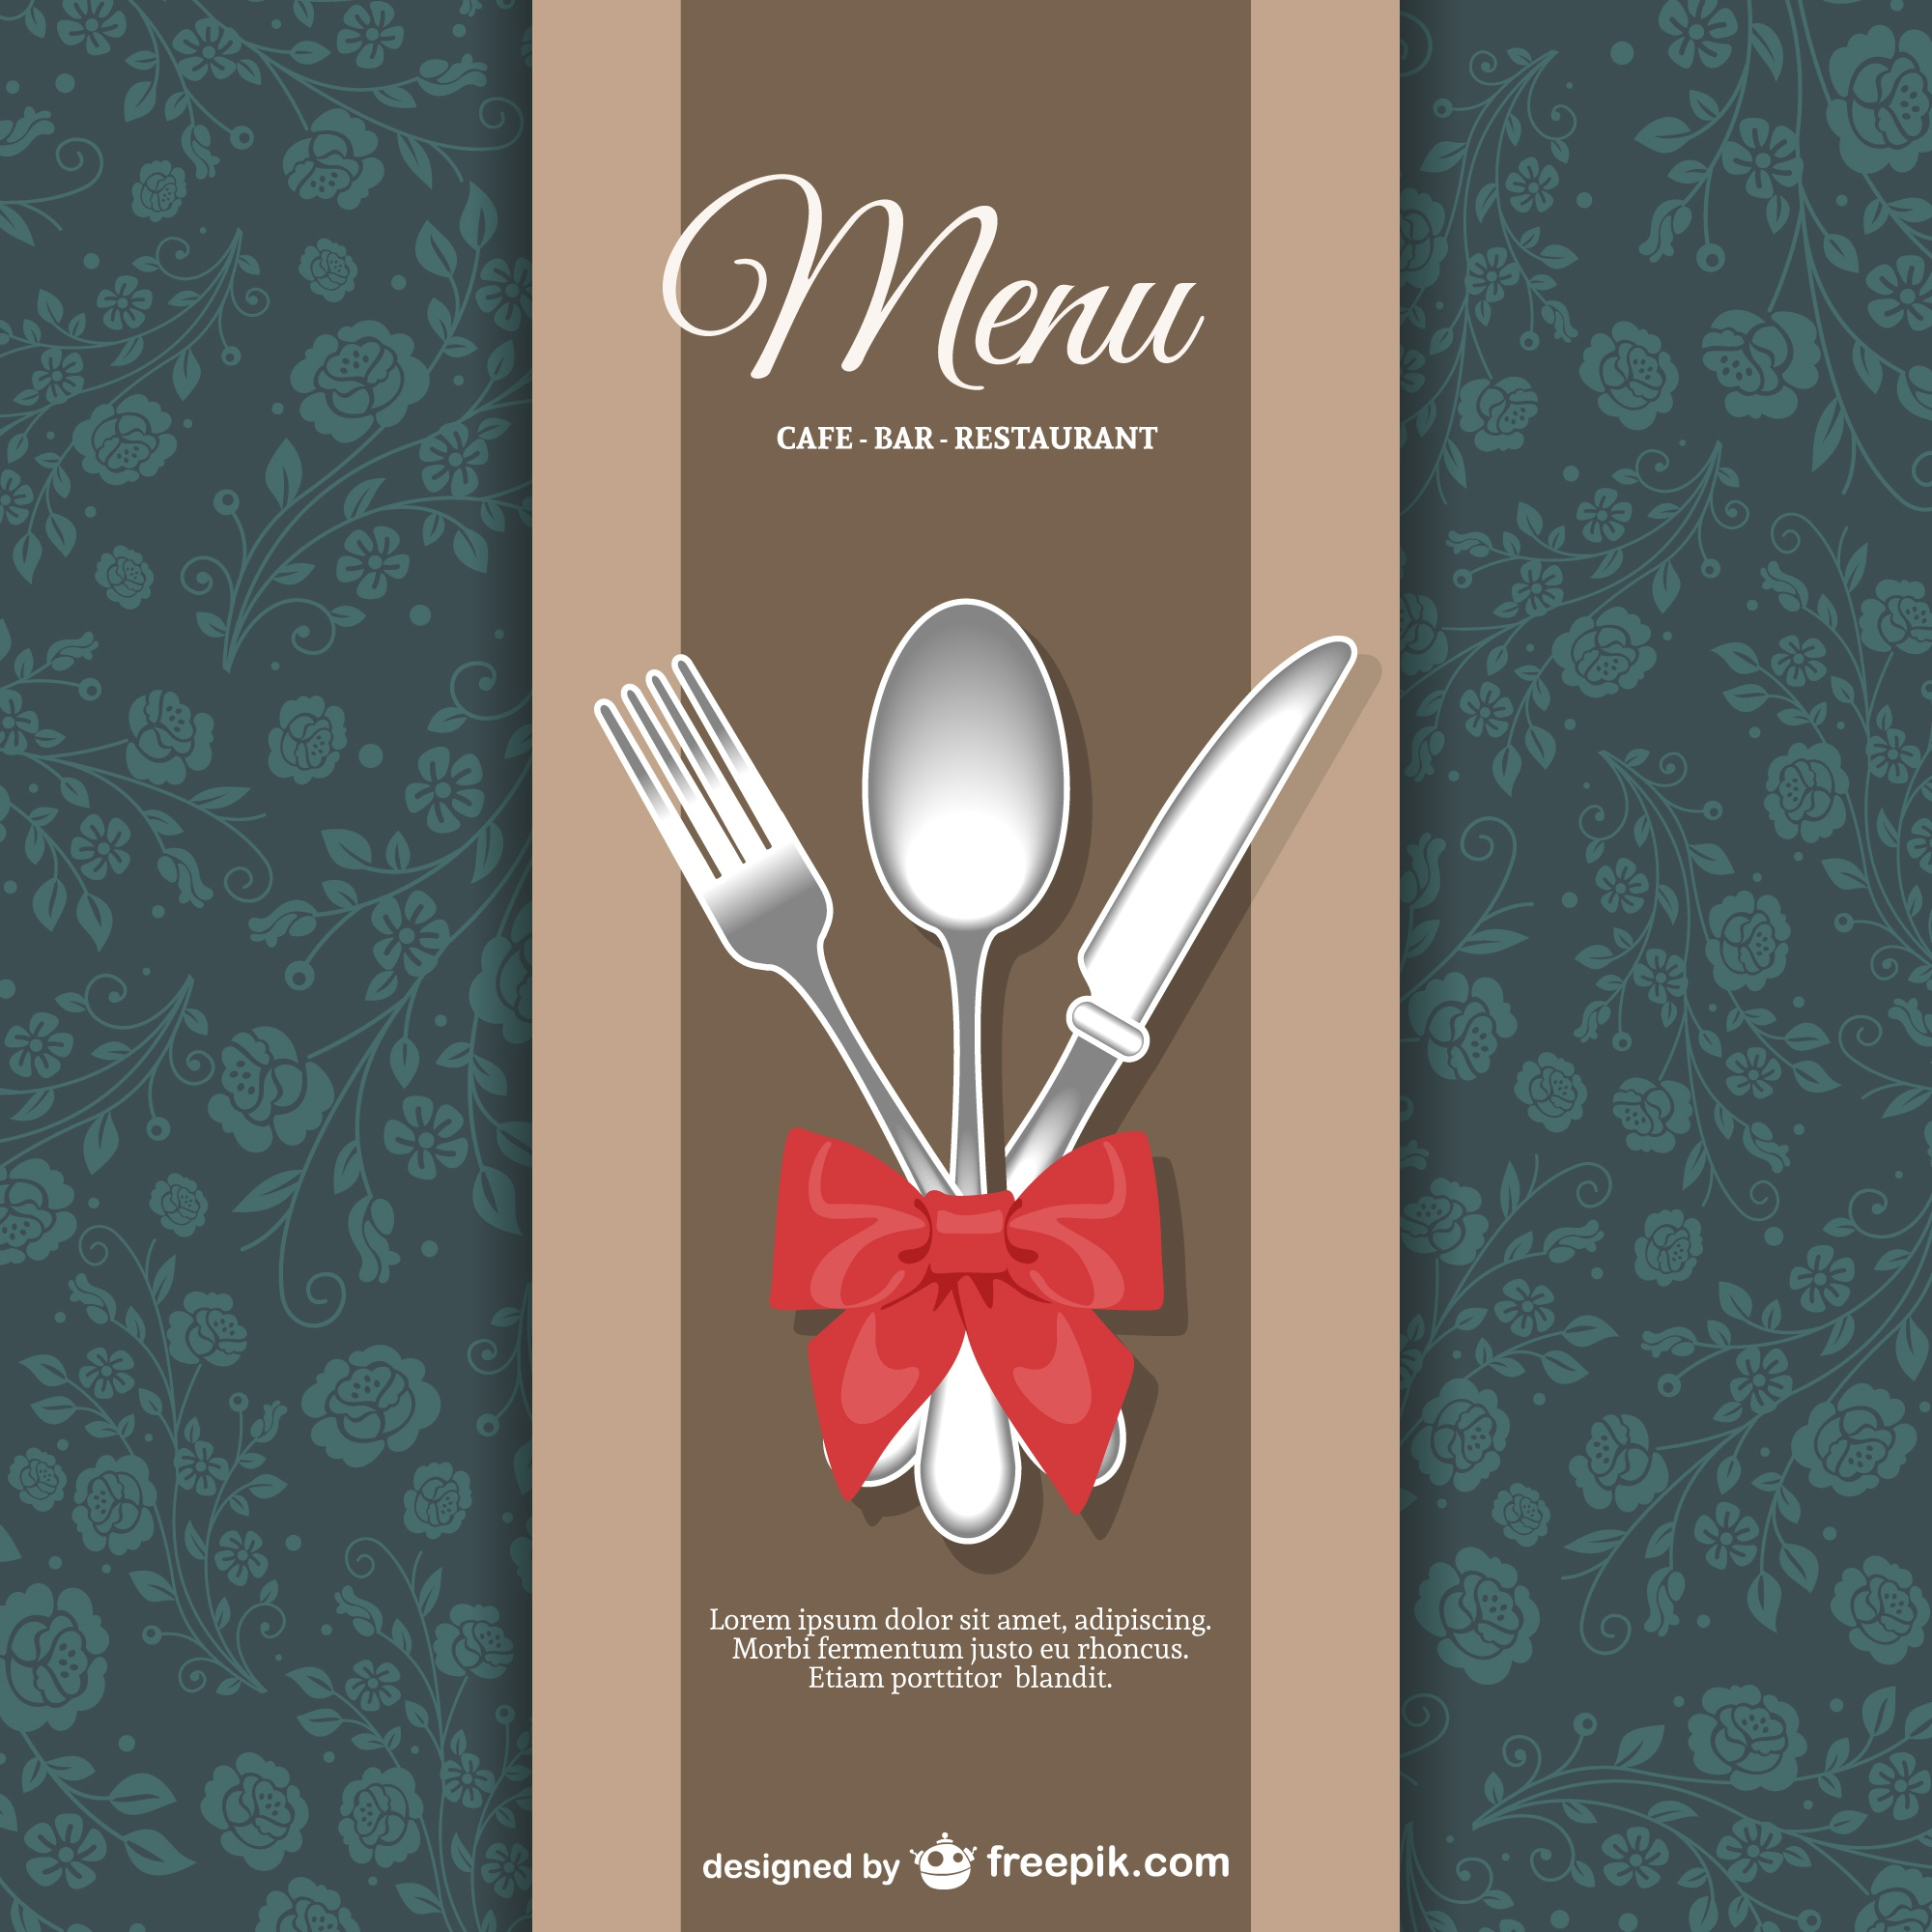 Restaurant menu floral design